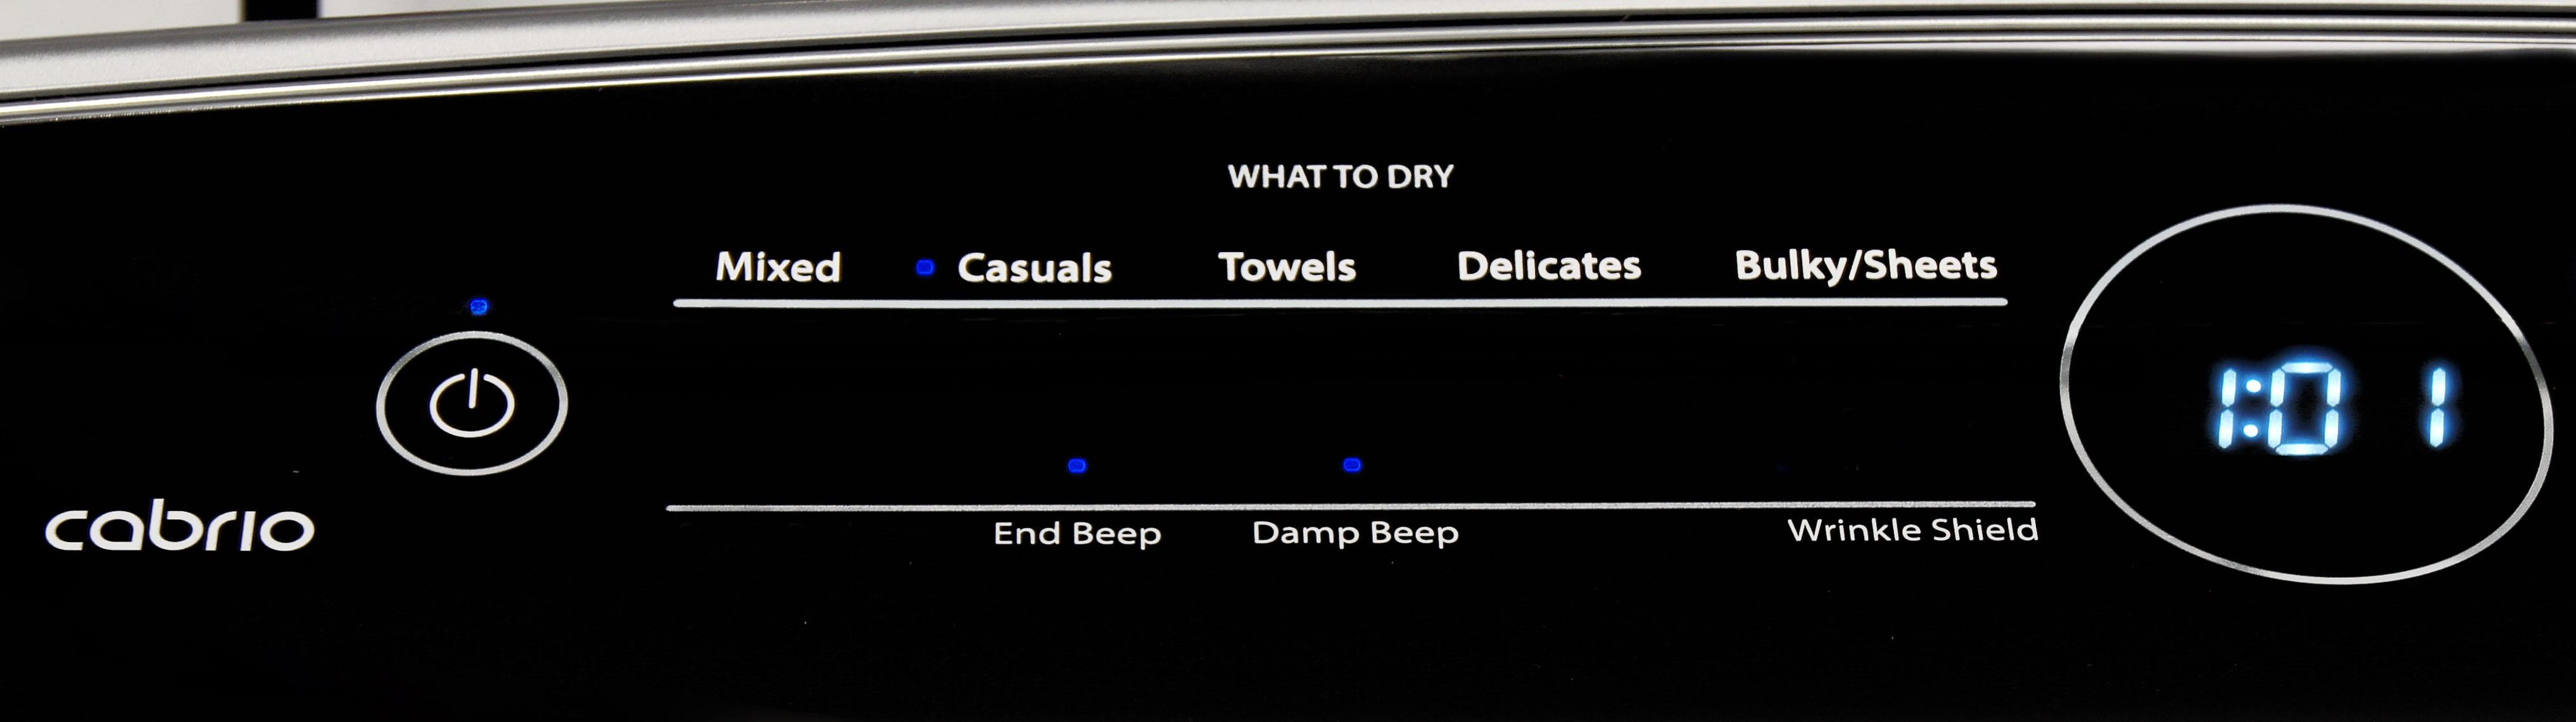 Whirlpool's Intuitive Touch Controls work to make selecting the right cycle for the Whirlpool Cabrio WED8000DW easy.